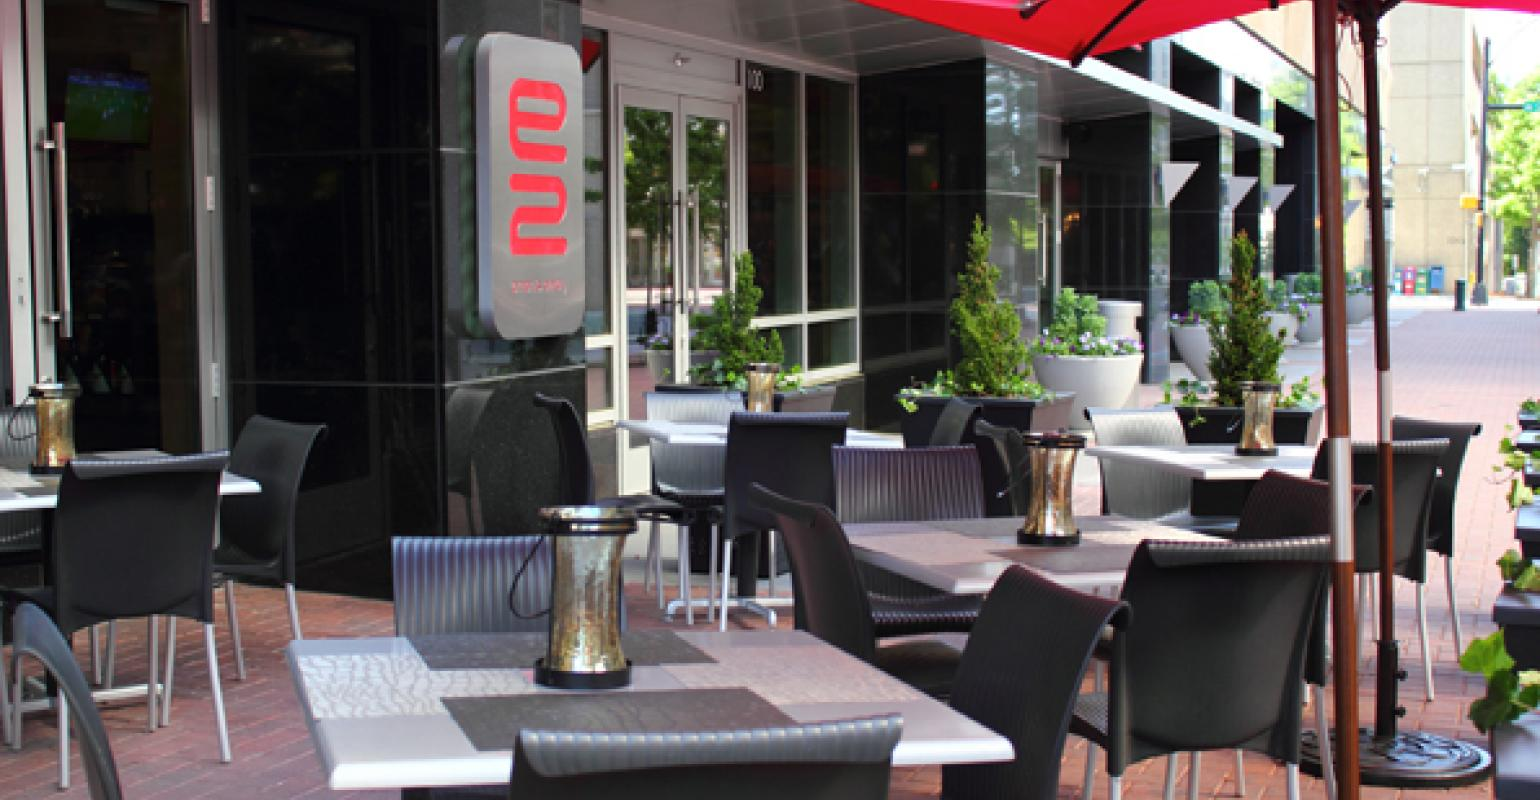 4 Ideas To Boost Restaurant Patio Business Restaurant Hospitality